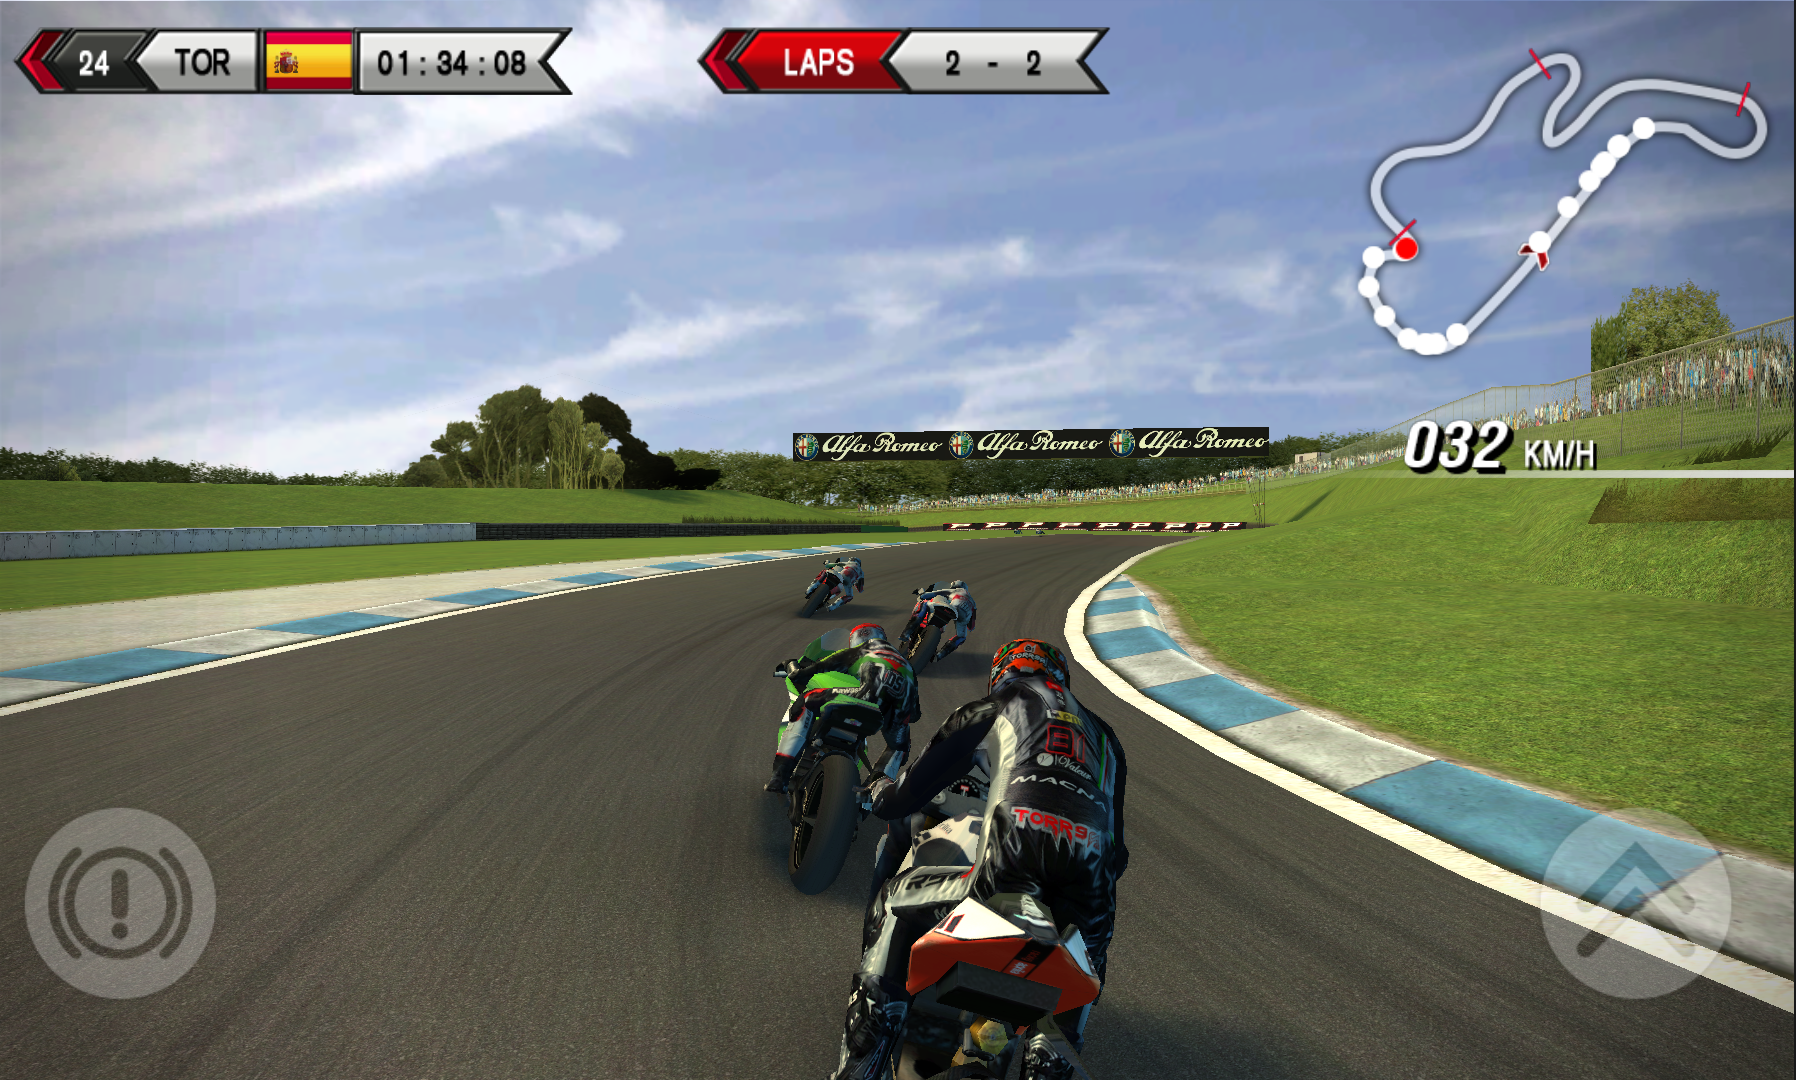 SBK15 Official Mobile Game androidアプリスクリーンショット1